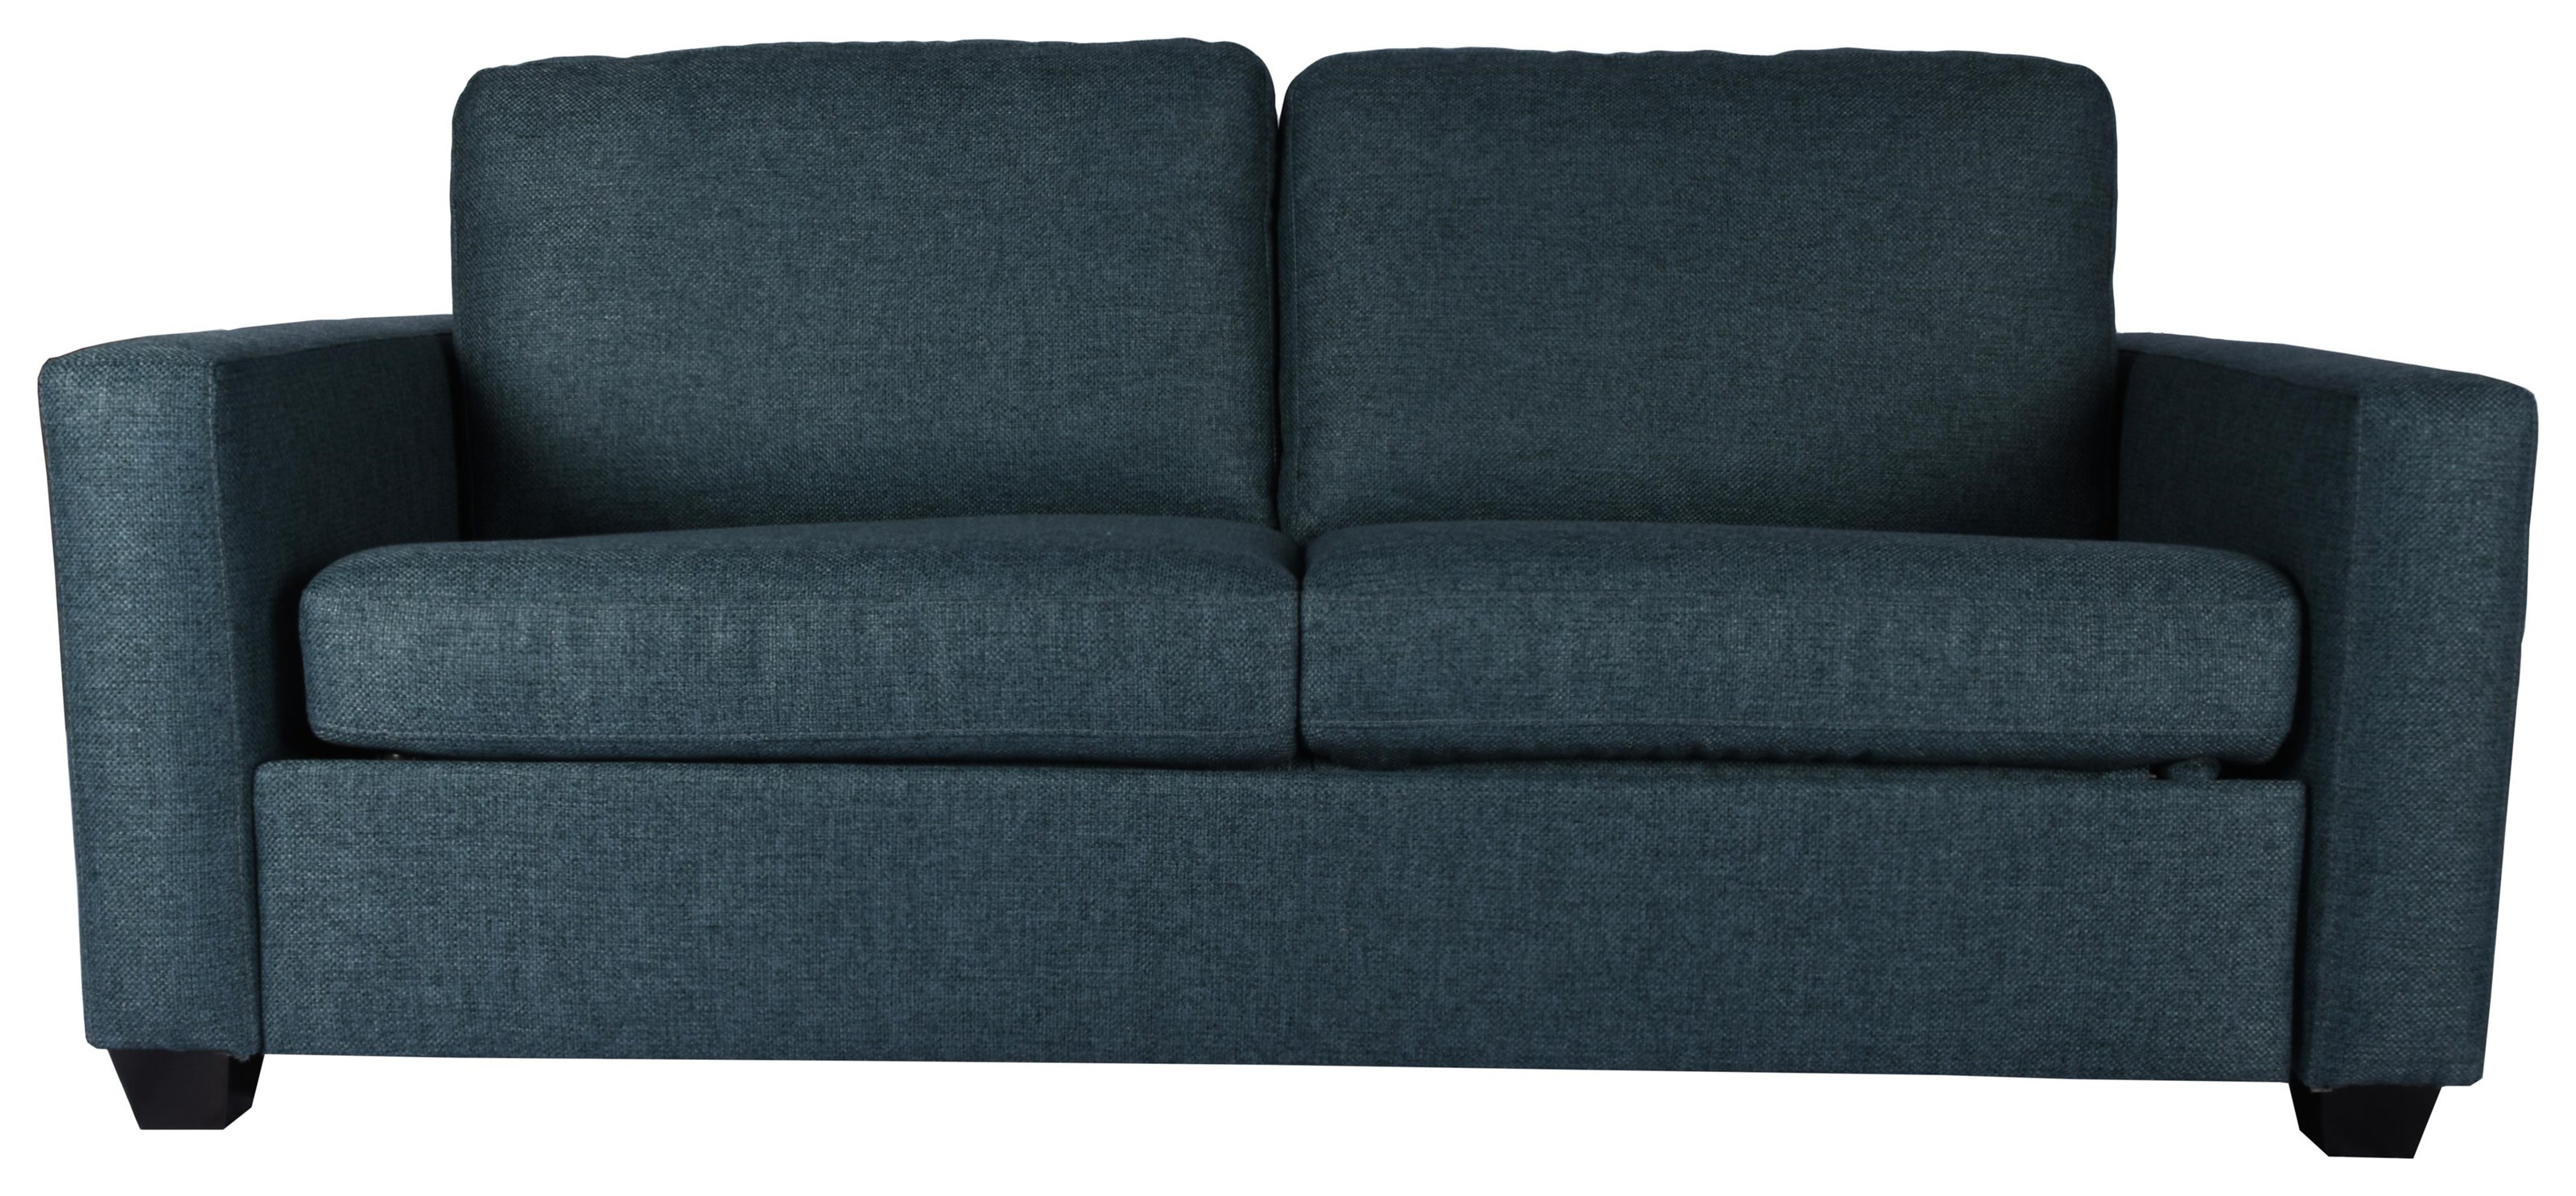 Killarny Sofa Bed by Rockwood at Bennett's Furniture and Mattresses